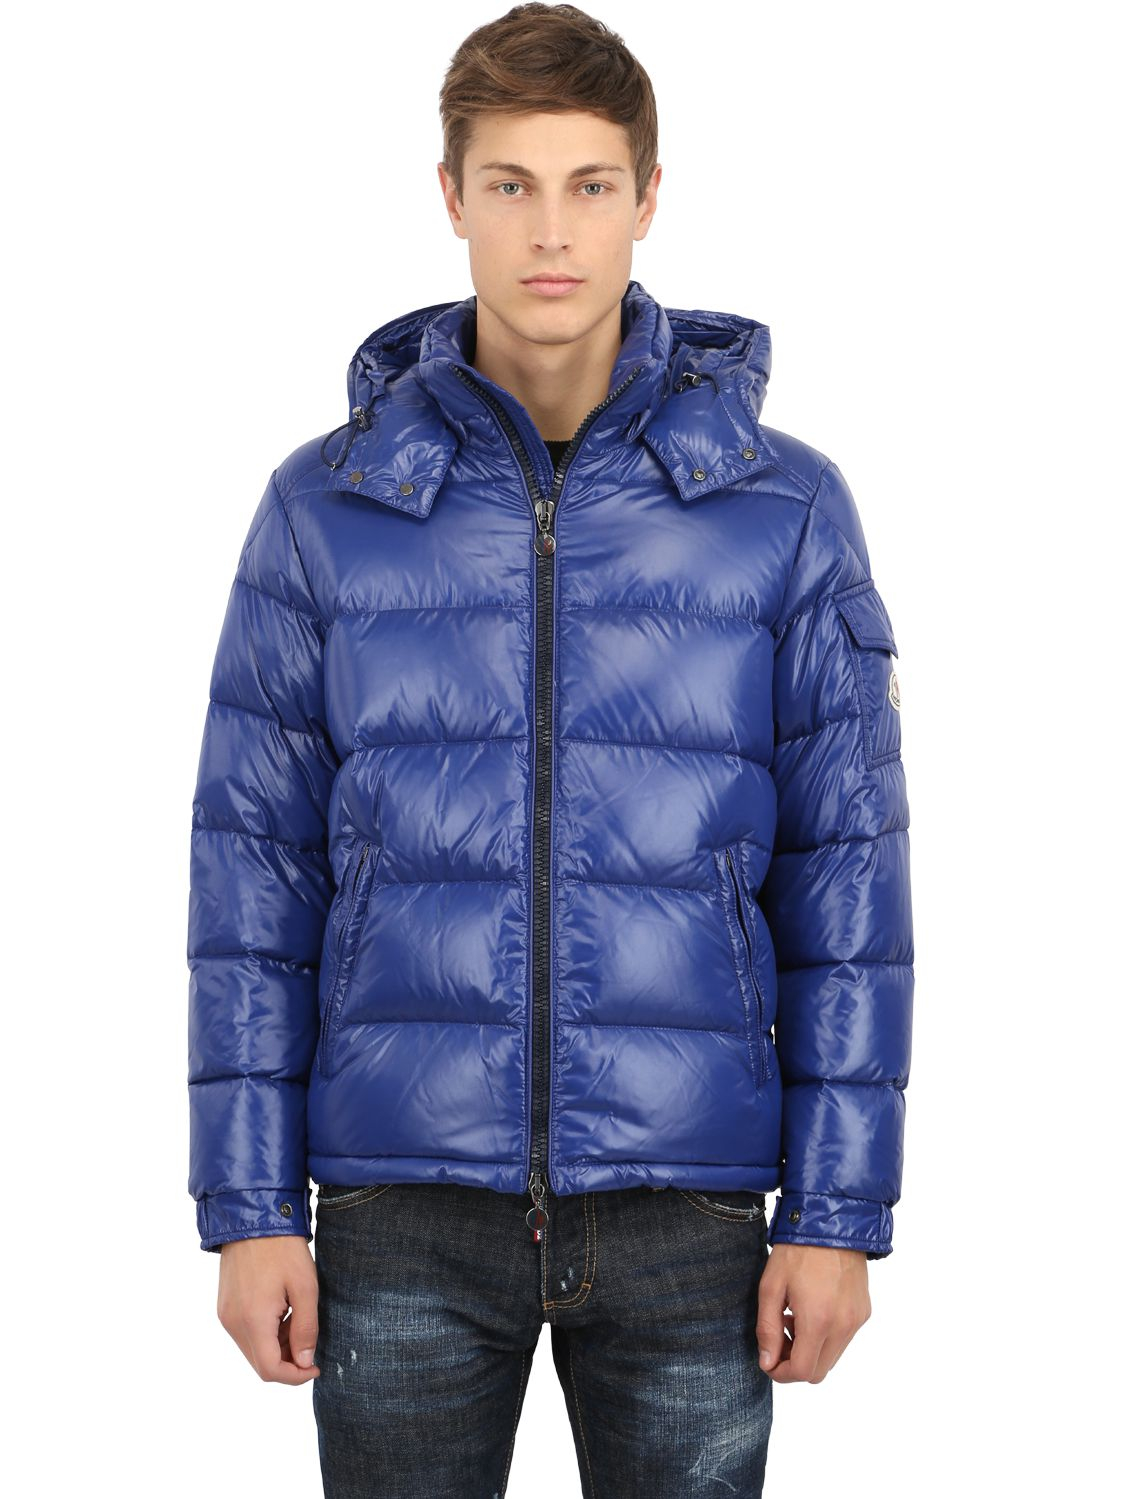 Lovable Moncler Maya Black | Wonderful Moncler Maya